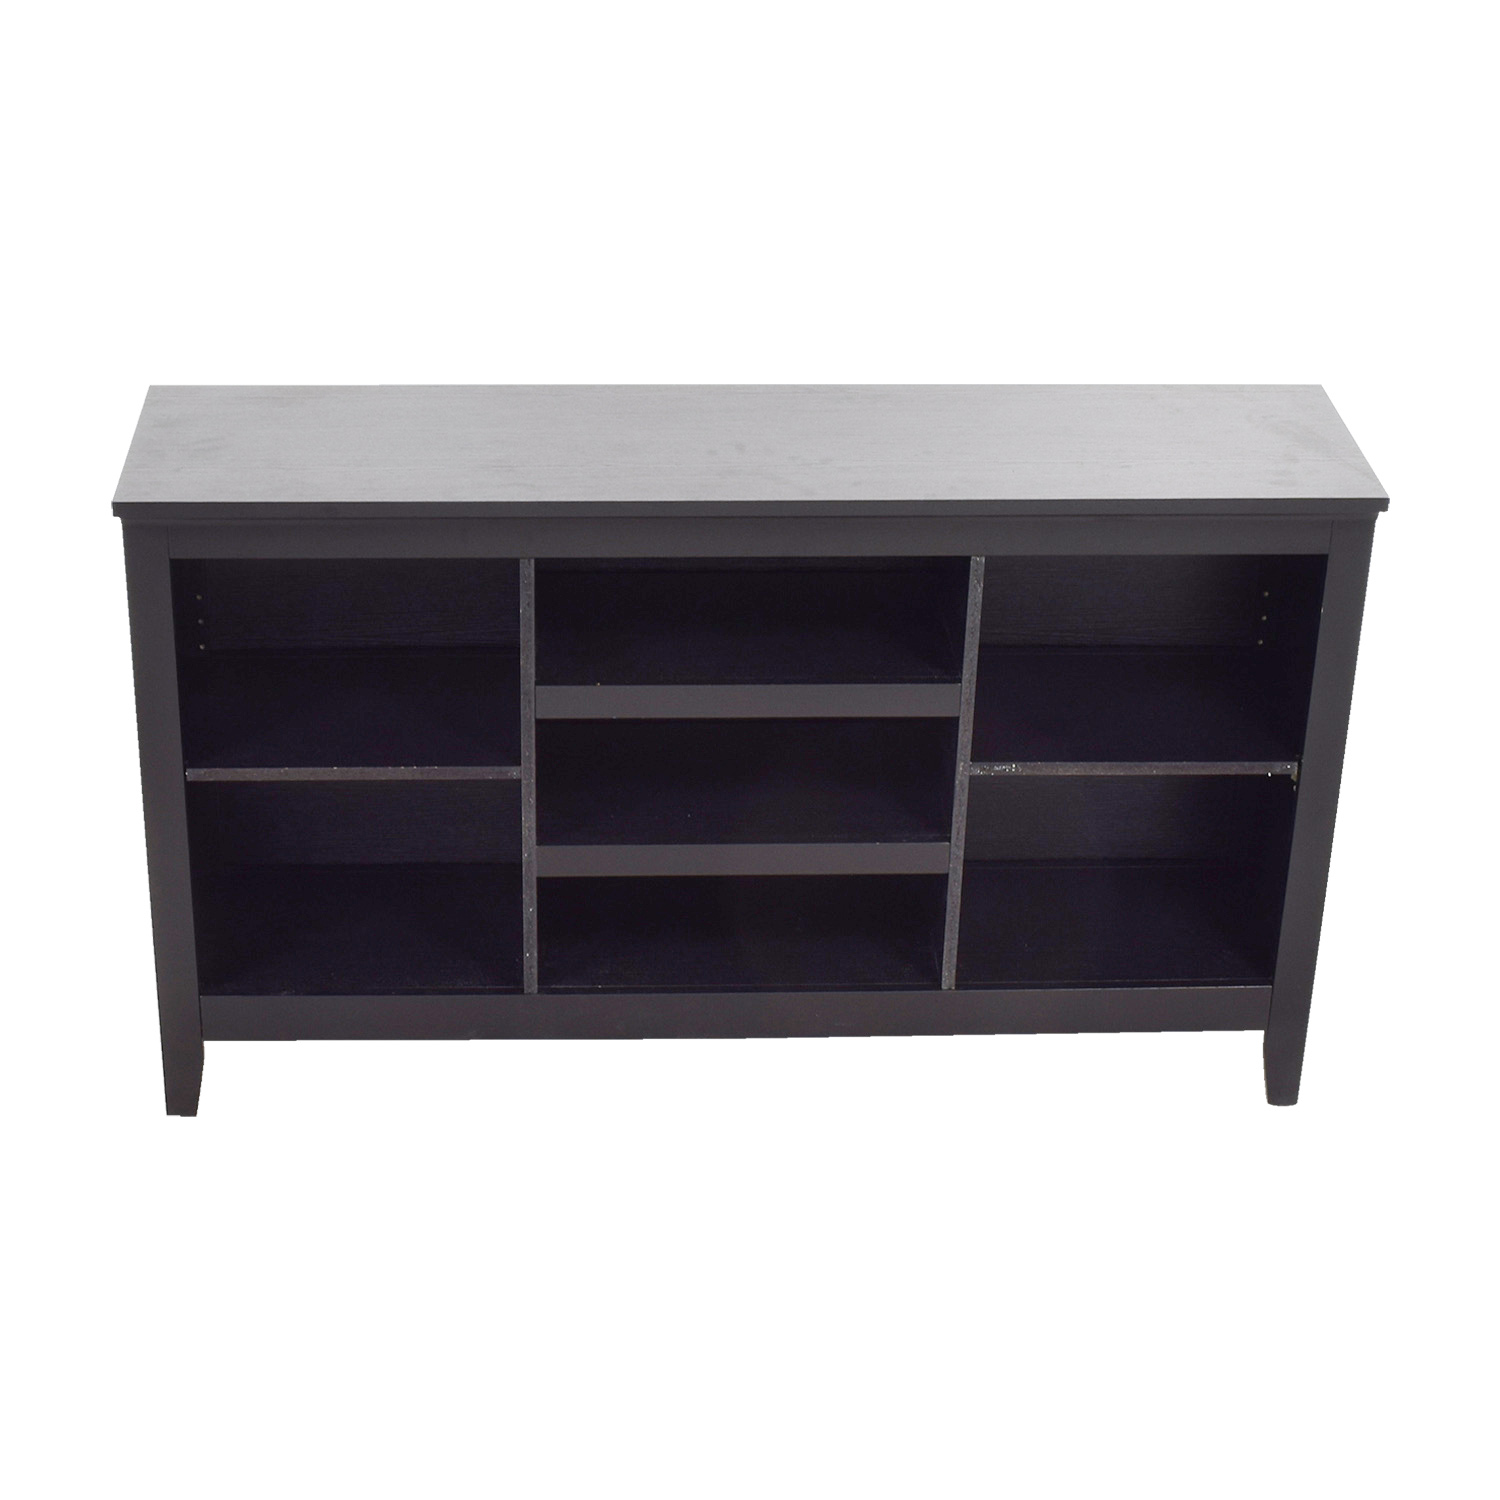 Target Target Multi Level Bookshelf Storage